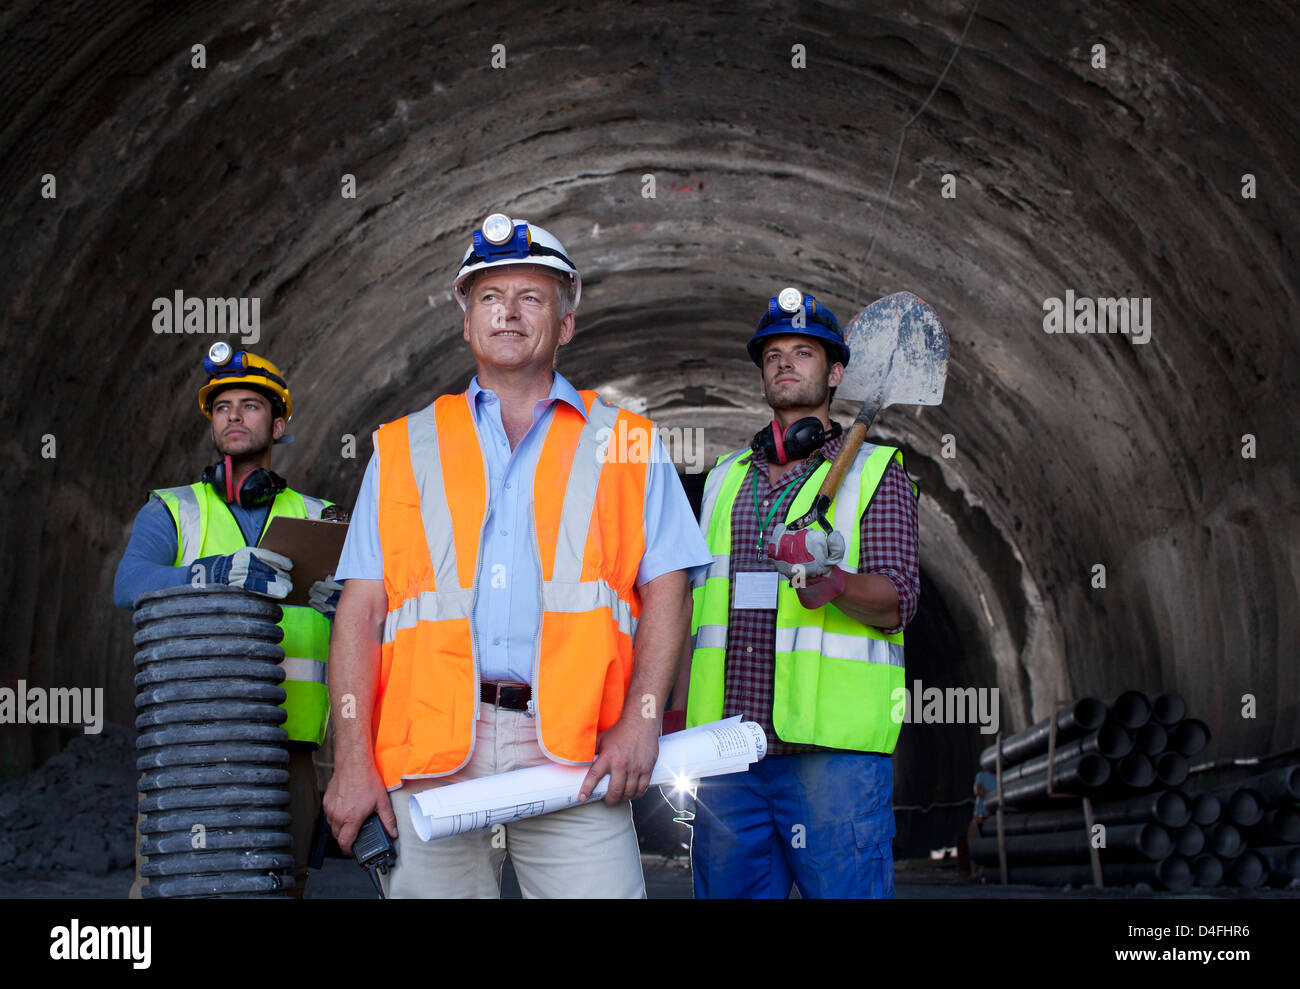 Businessman and workers standing in tunnel Stock Photo